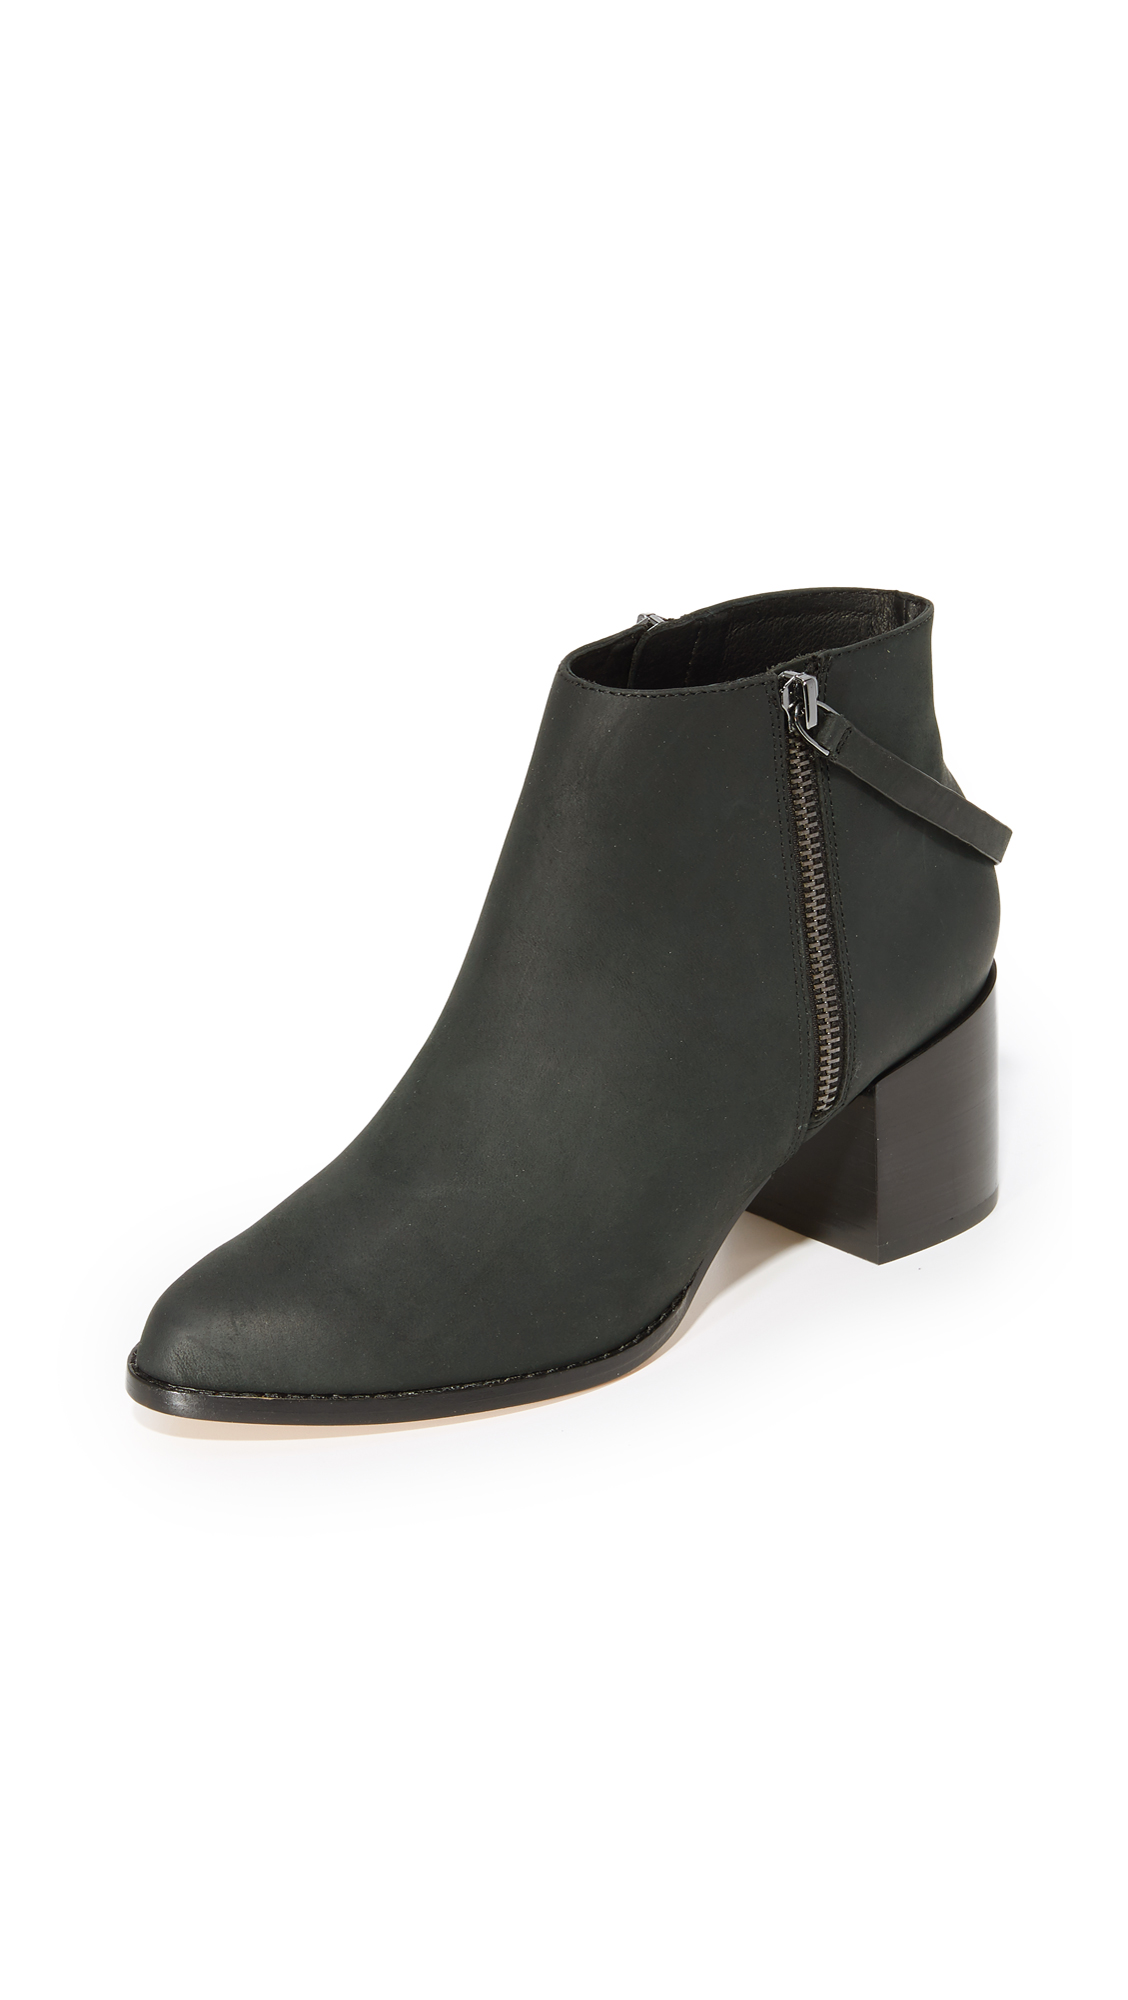 Photo of Matt Bernson Caspian Booties Black - Matt Bernson online